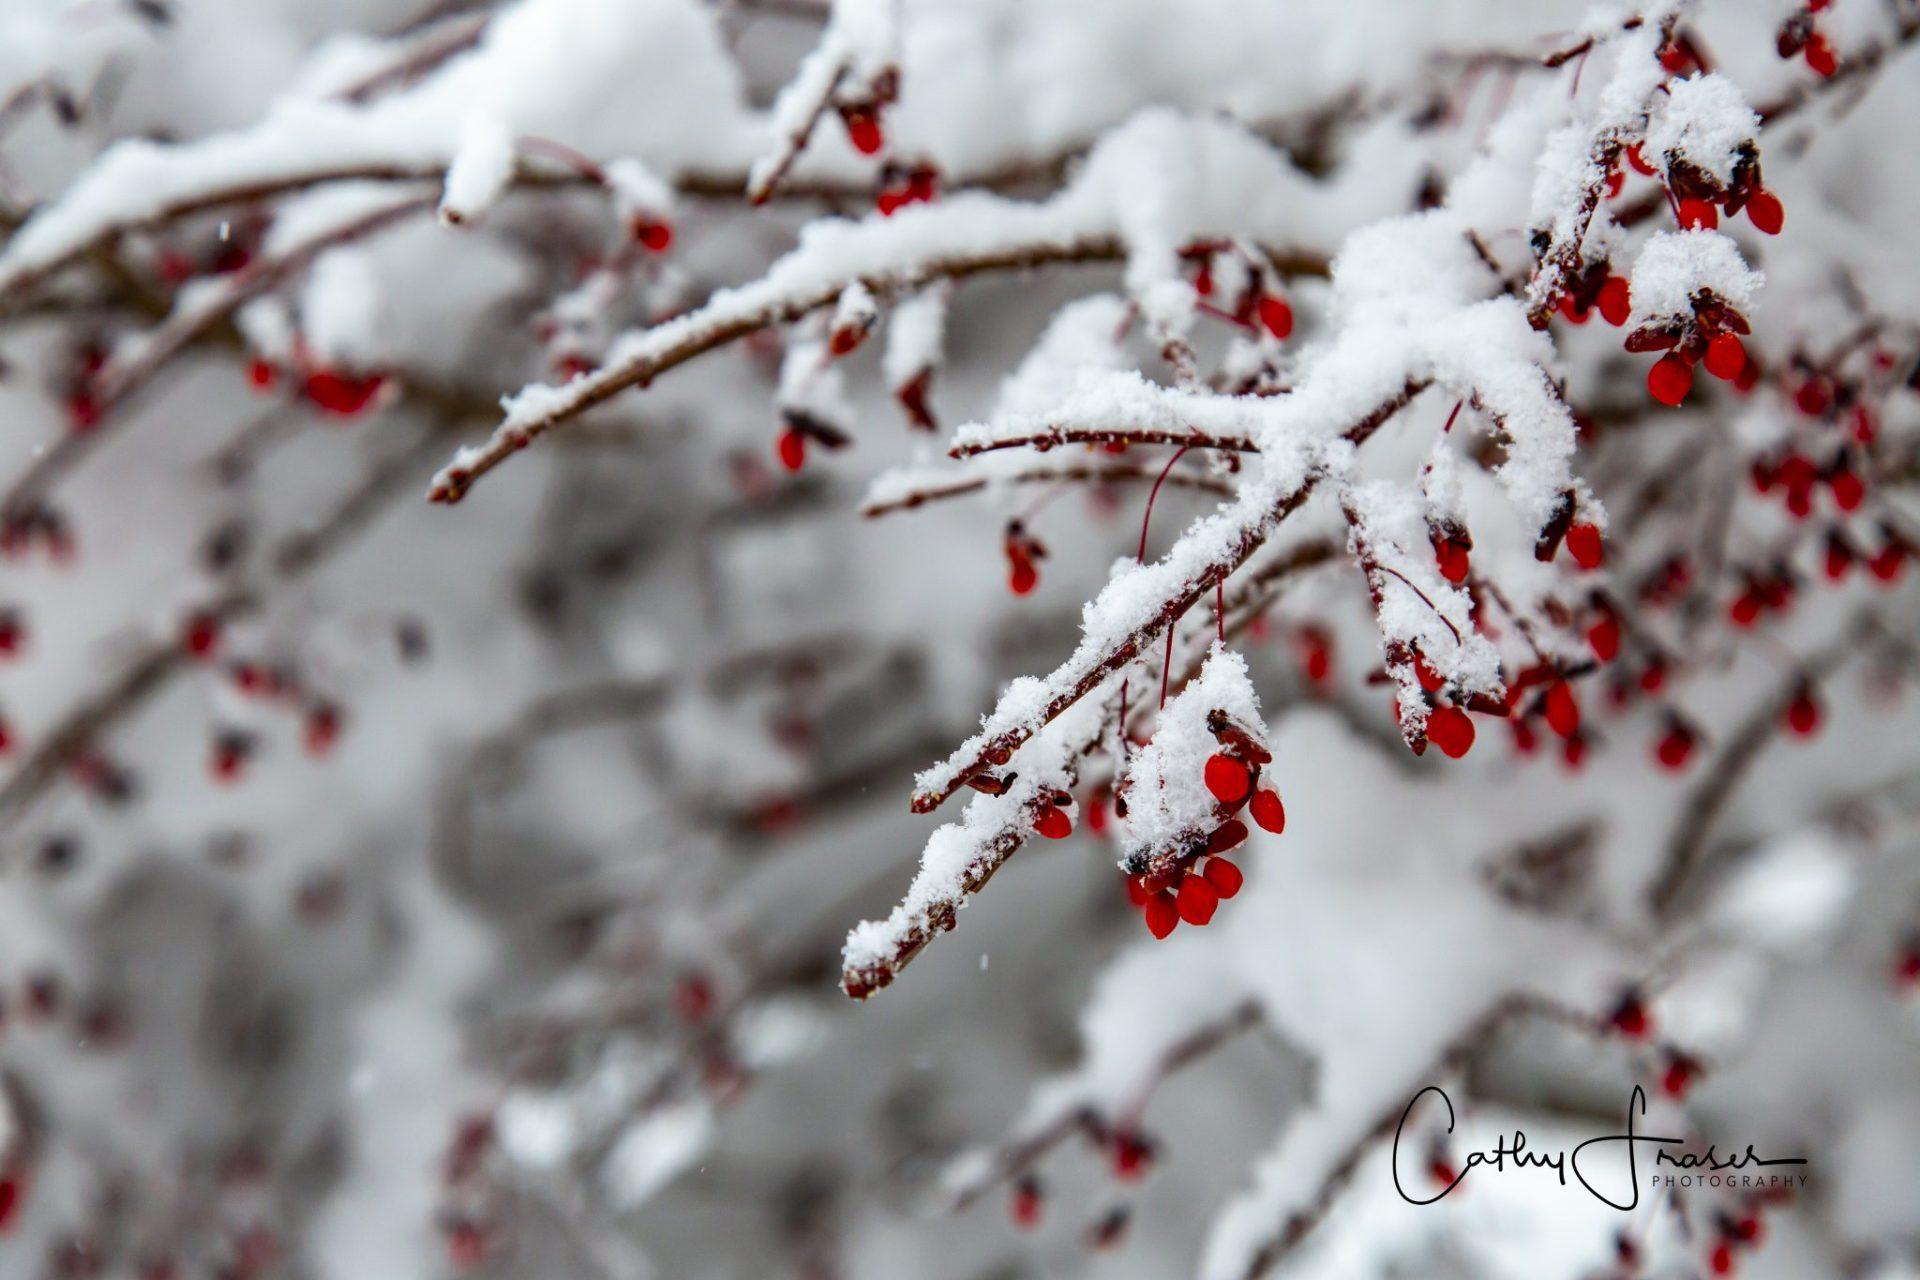 Landscape photography of branches with snow on them, with red berries